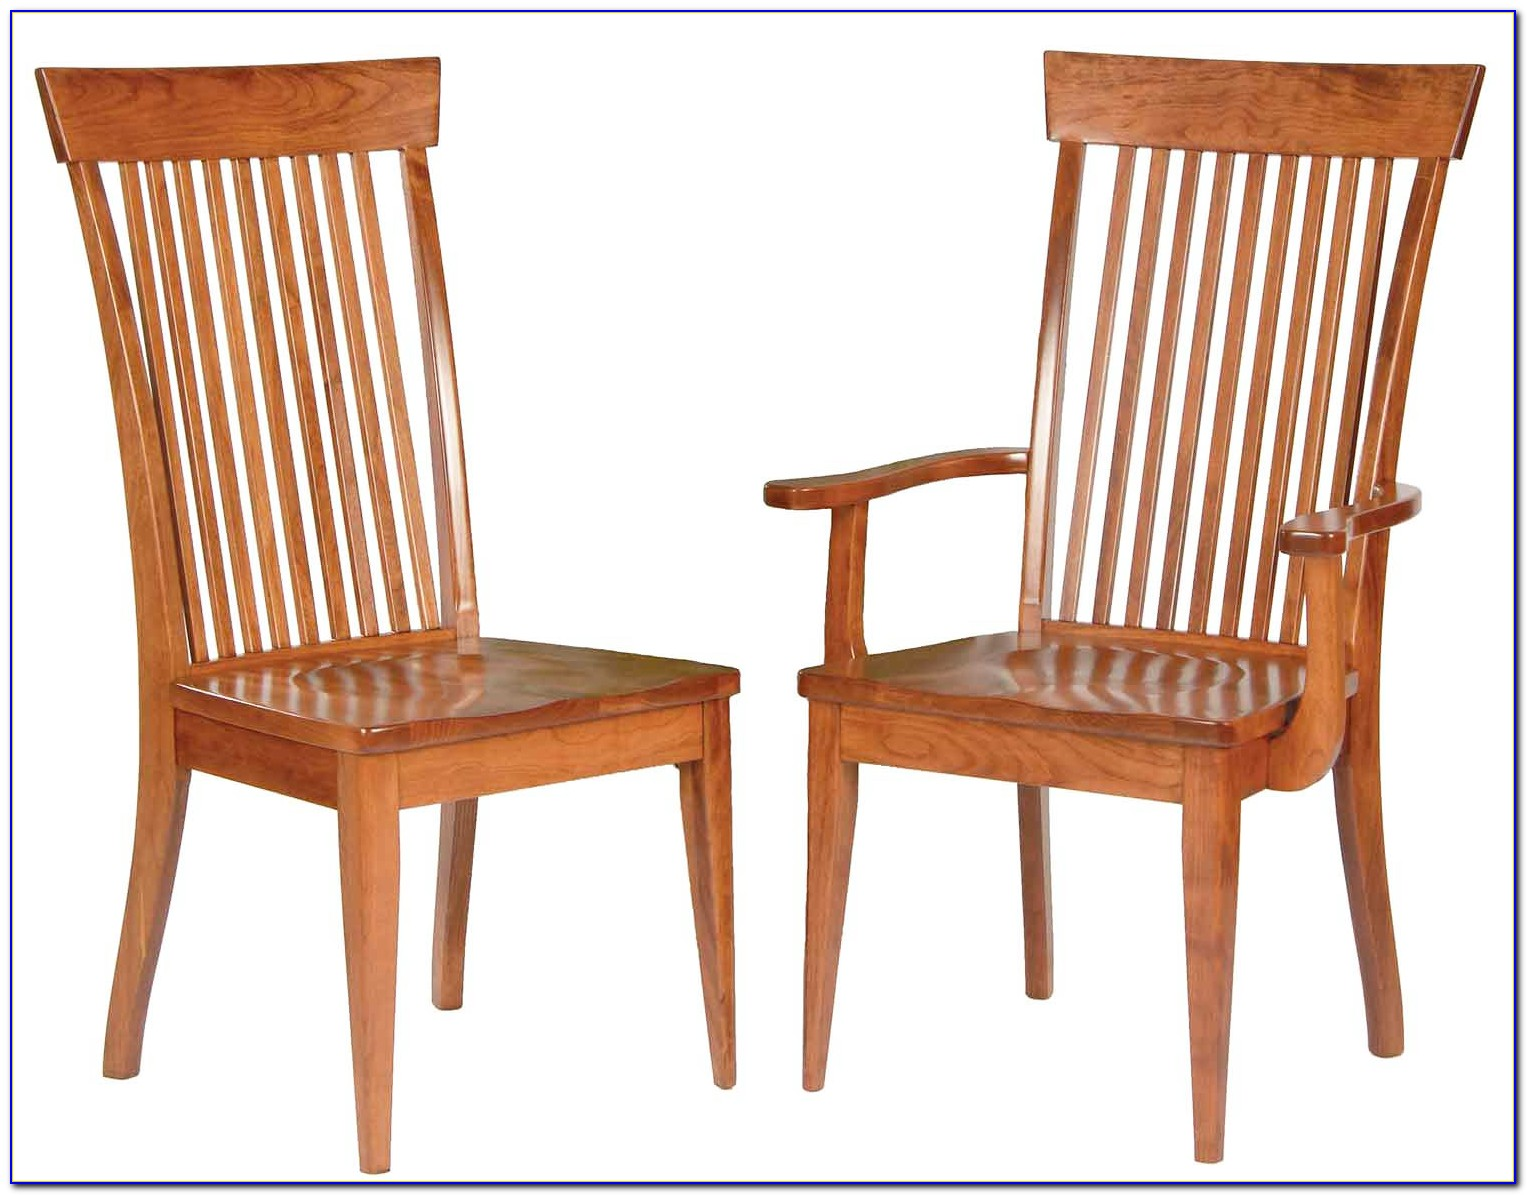 Wooden Dining Room Chairs Nz